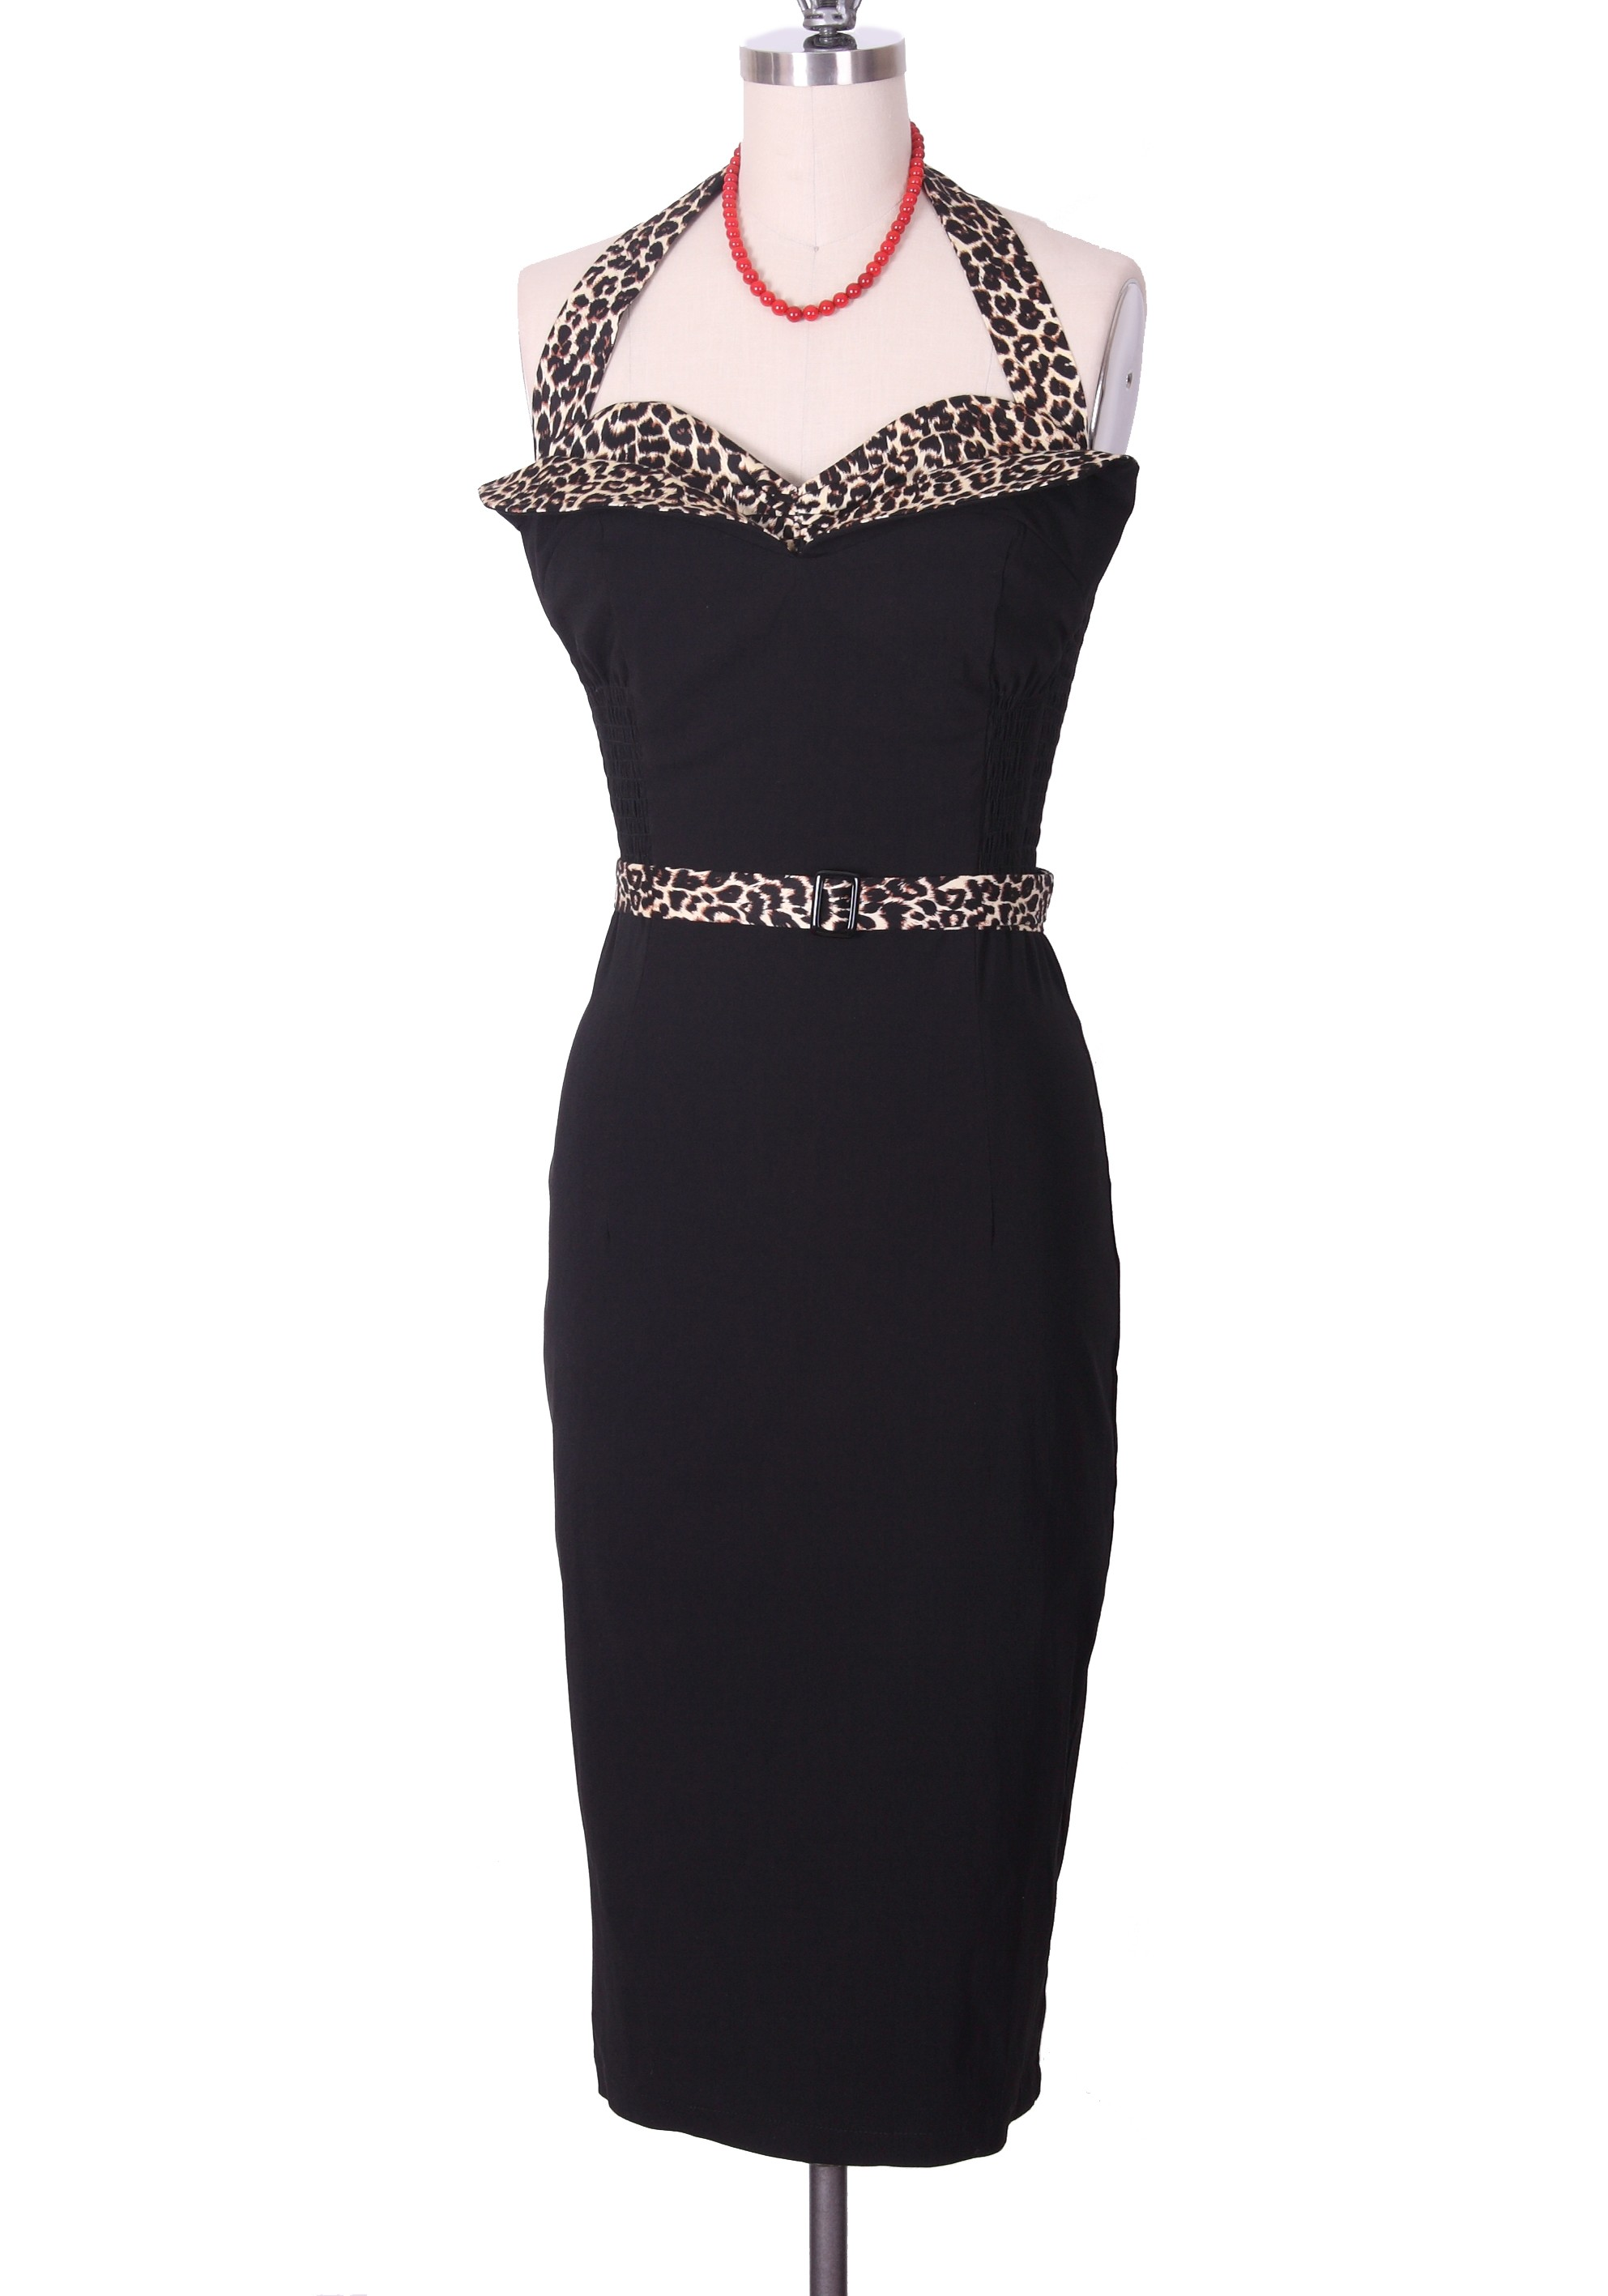 Pin Up Girl Perfection! Vintage Dress | ReoRia